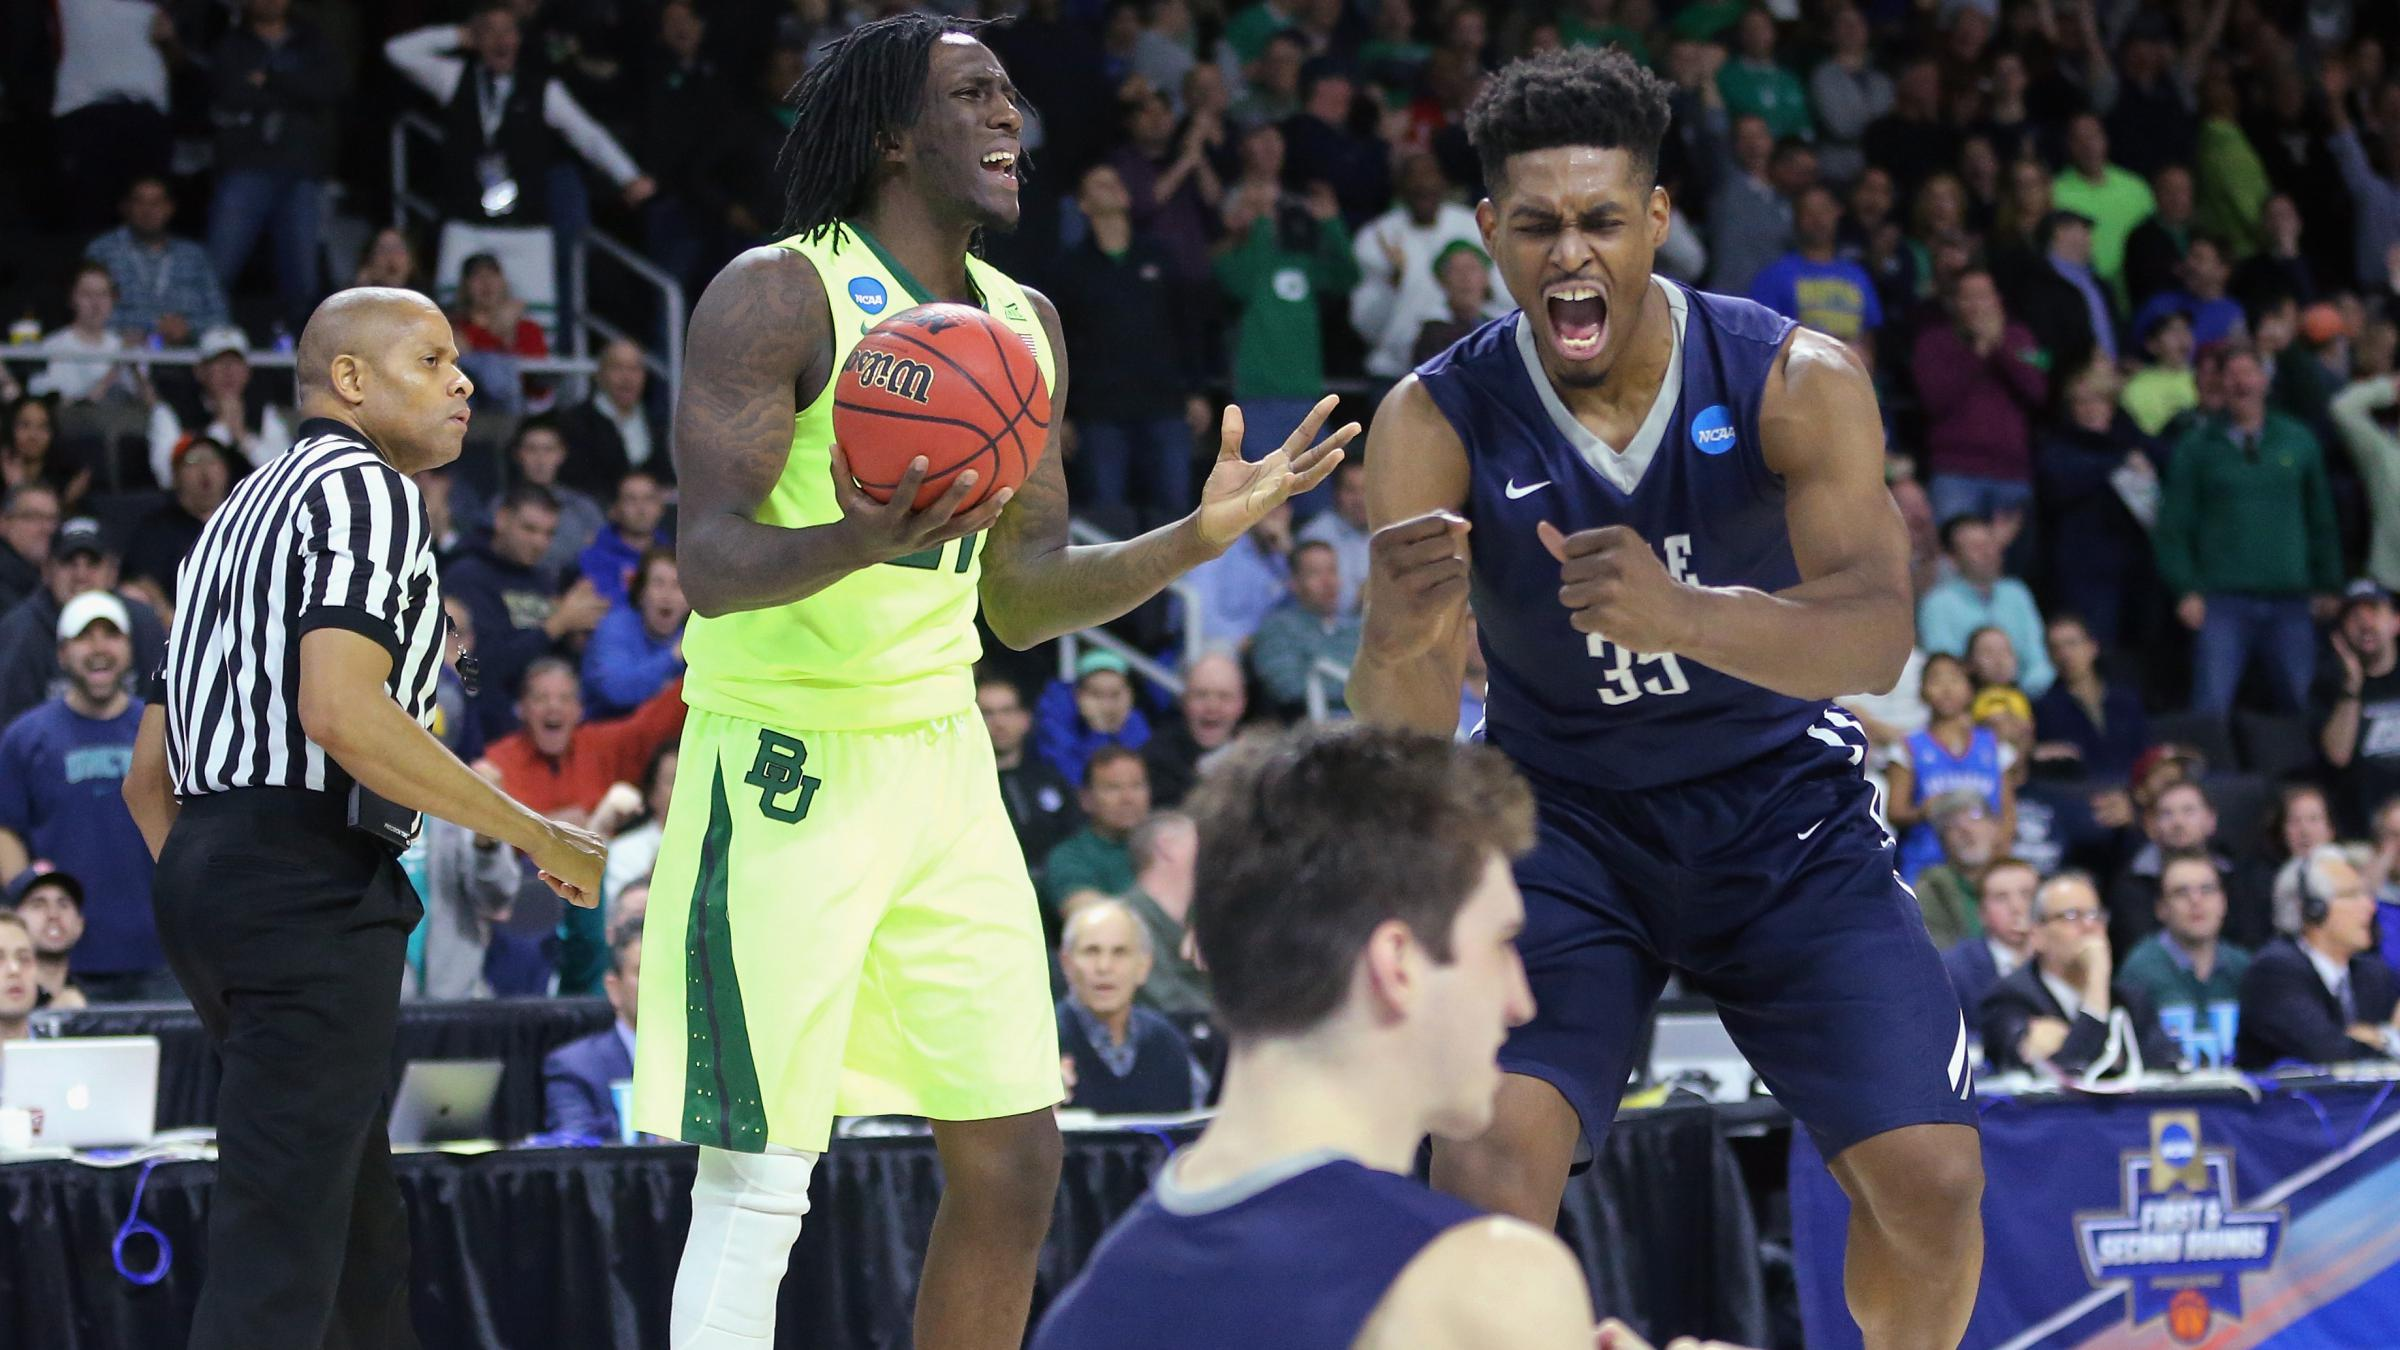 Yale Notches Historic Upset Win Over Baylor, Sparking A Great